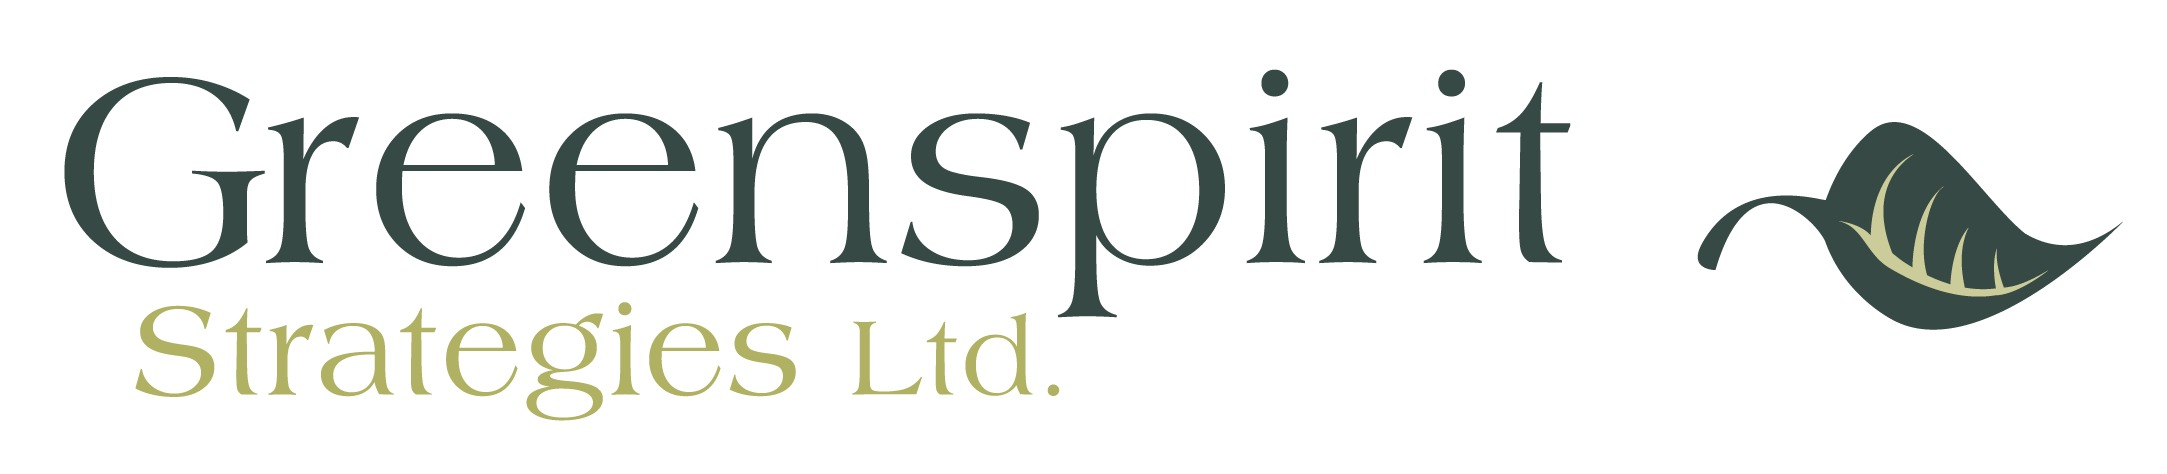 Greenspirit Strategies Ltd.